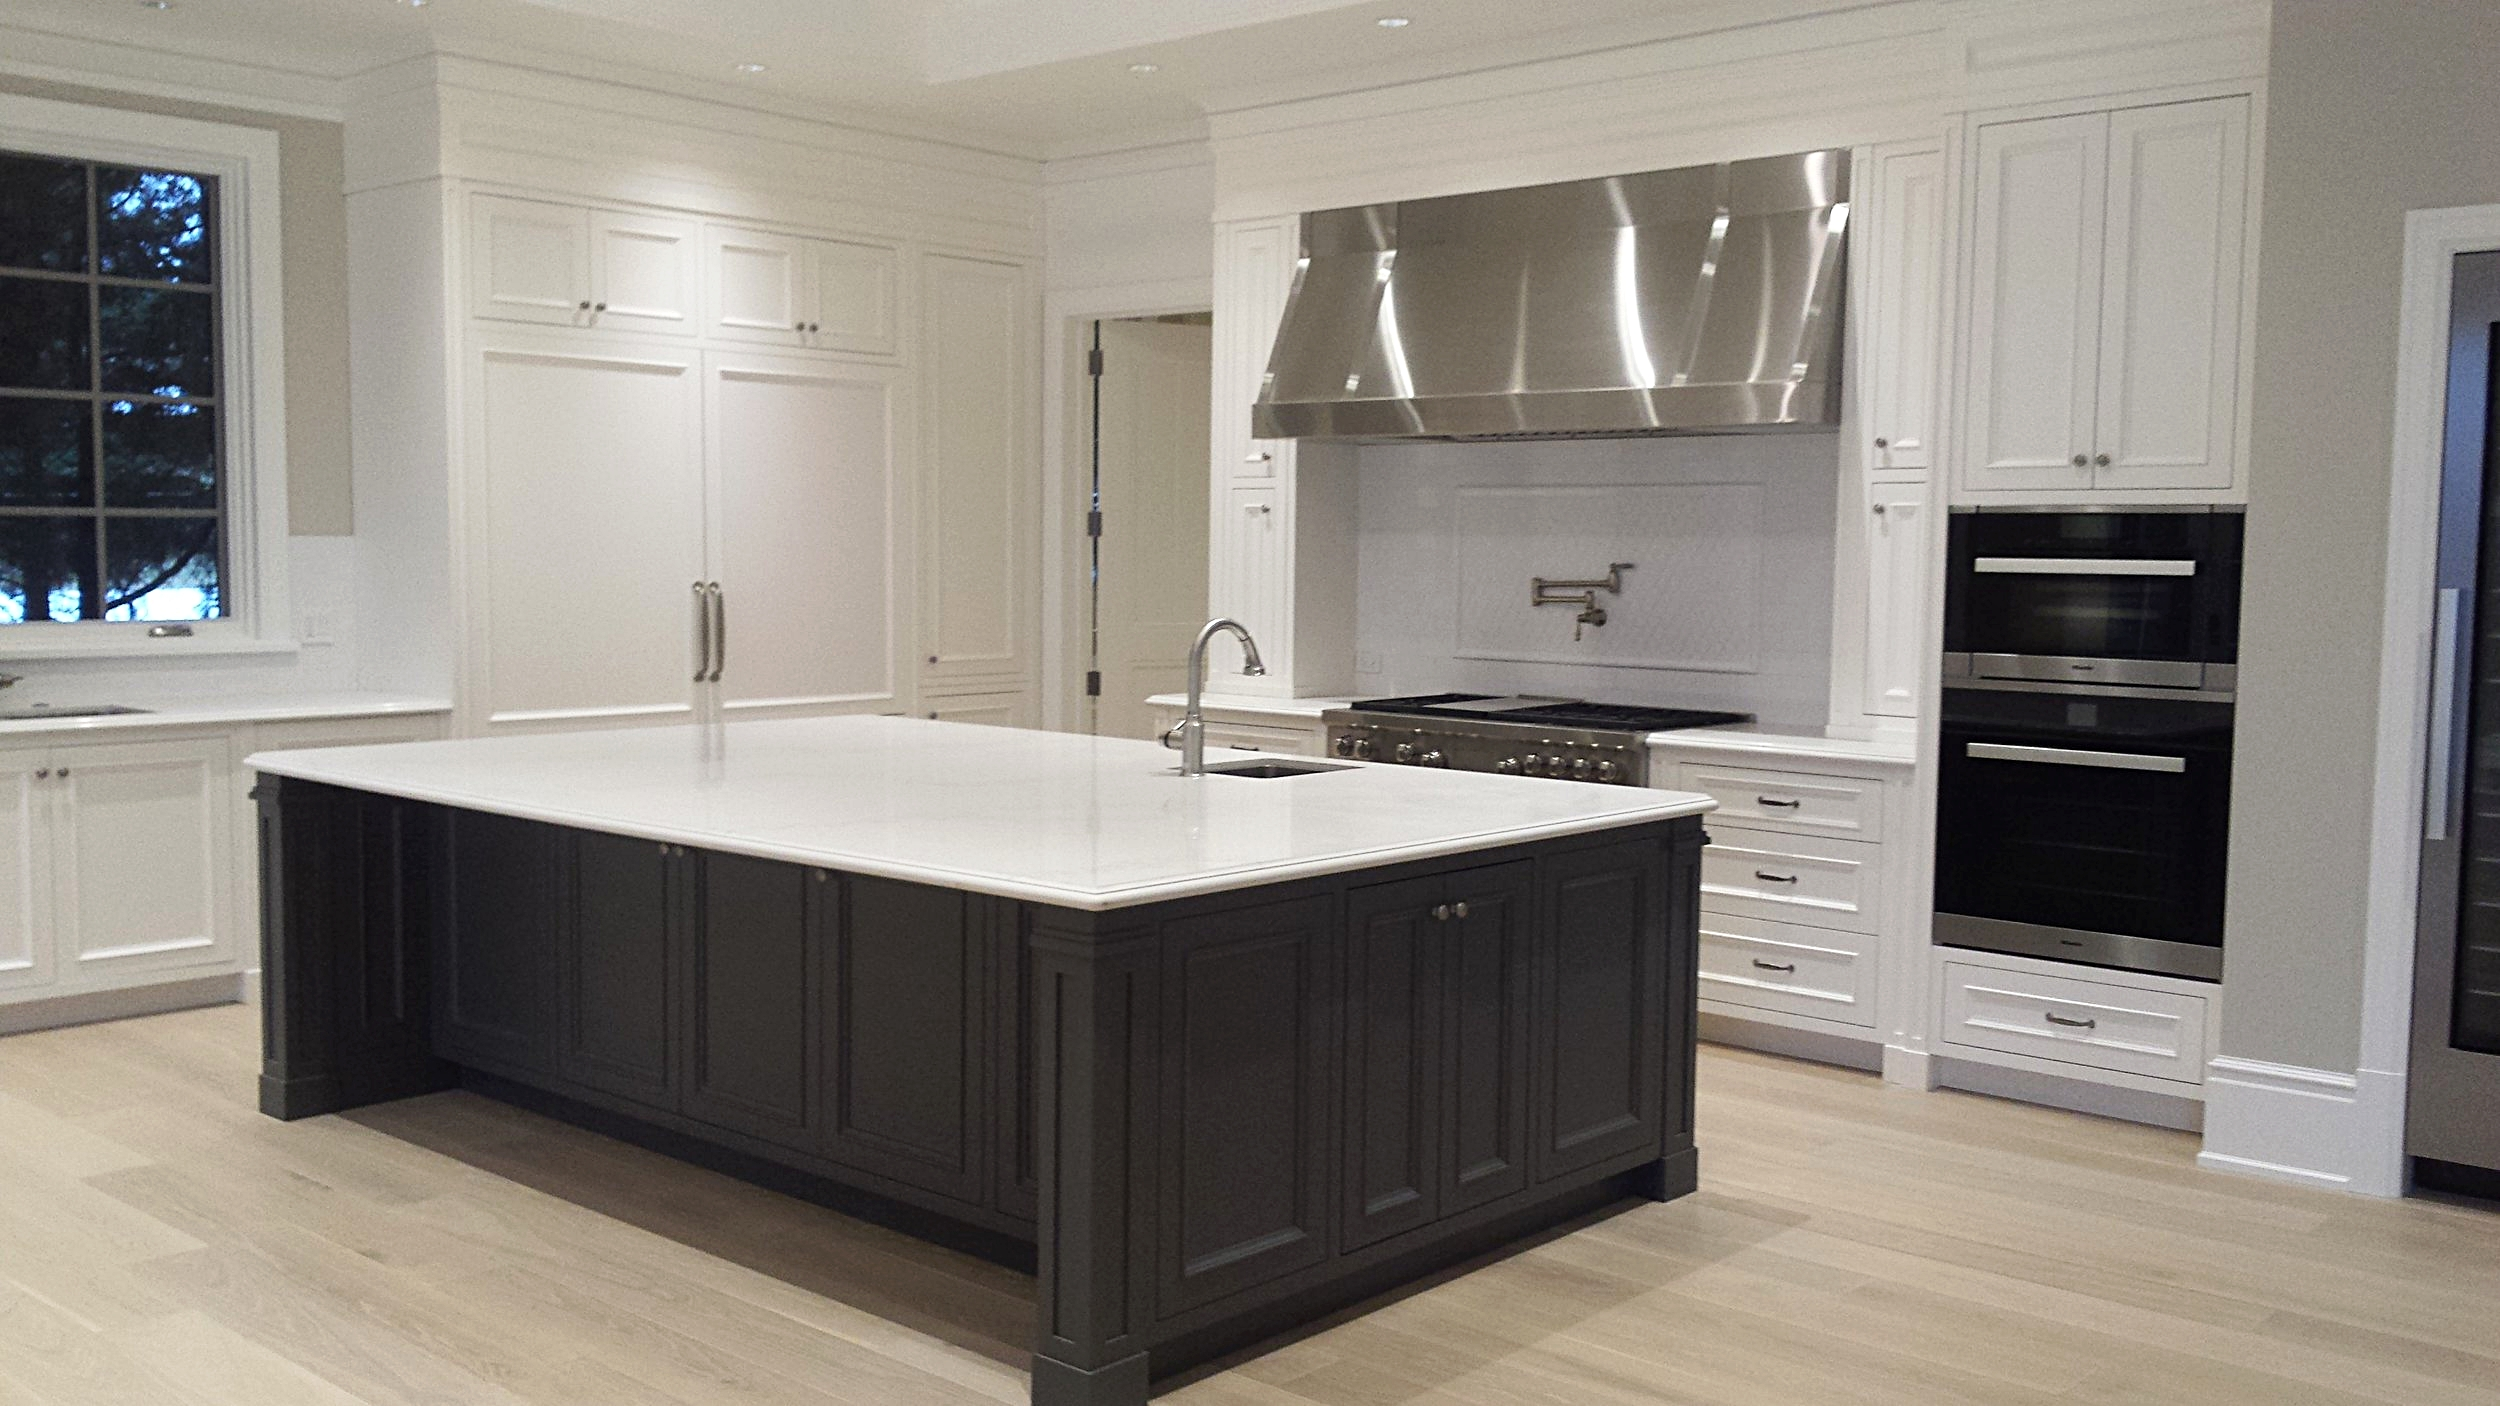 transitional-two-tone-white-and-dark-kitchen-cabinetry.jpg